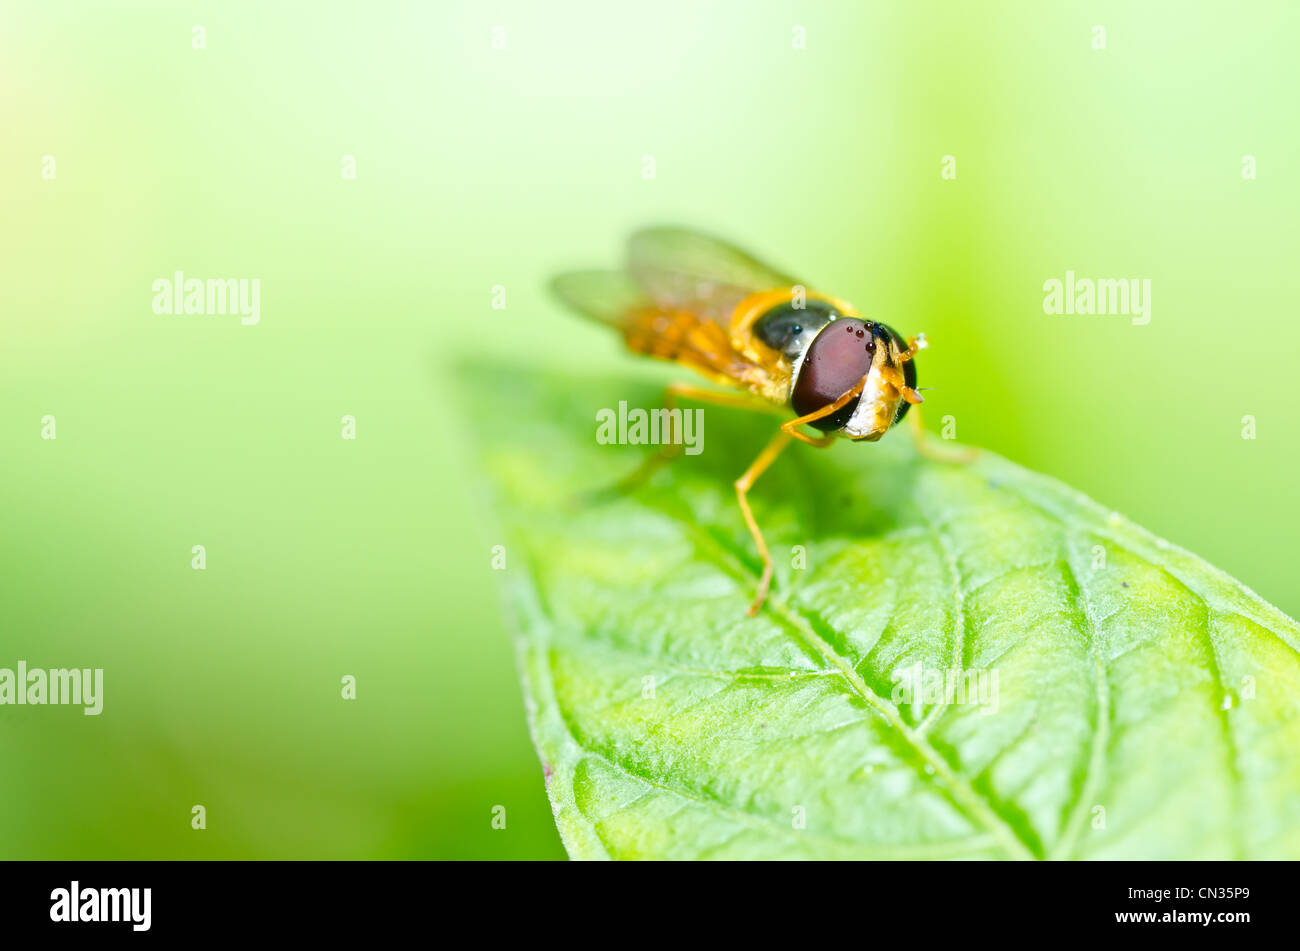 Fruit files or Flower files or hover files in green nature or in the garden - Stock Image